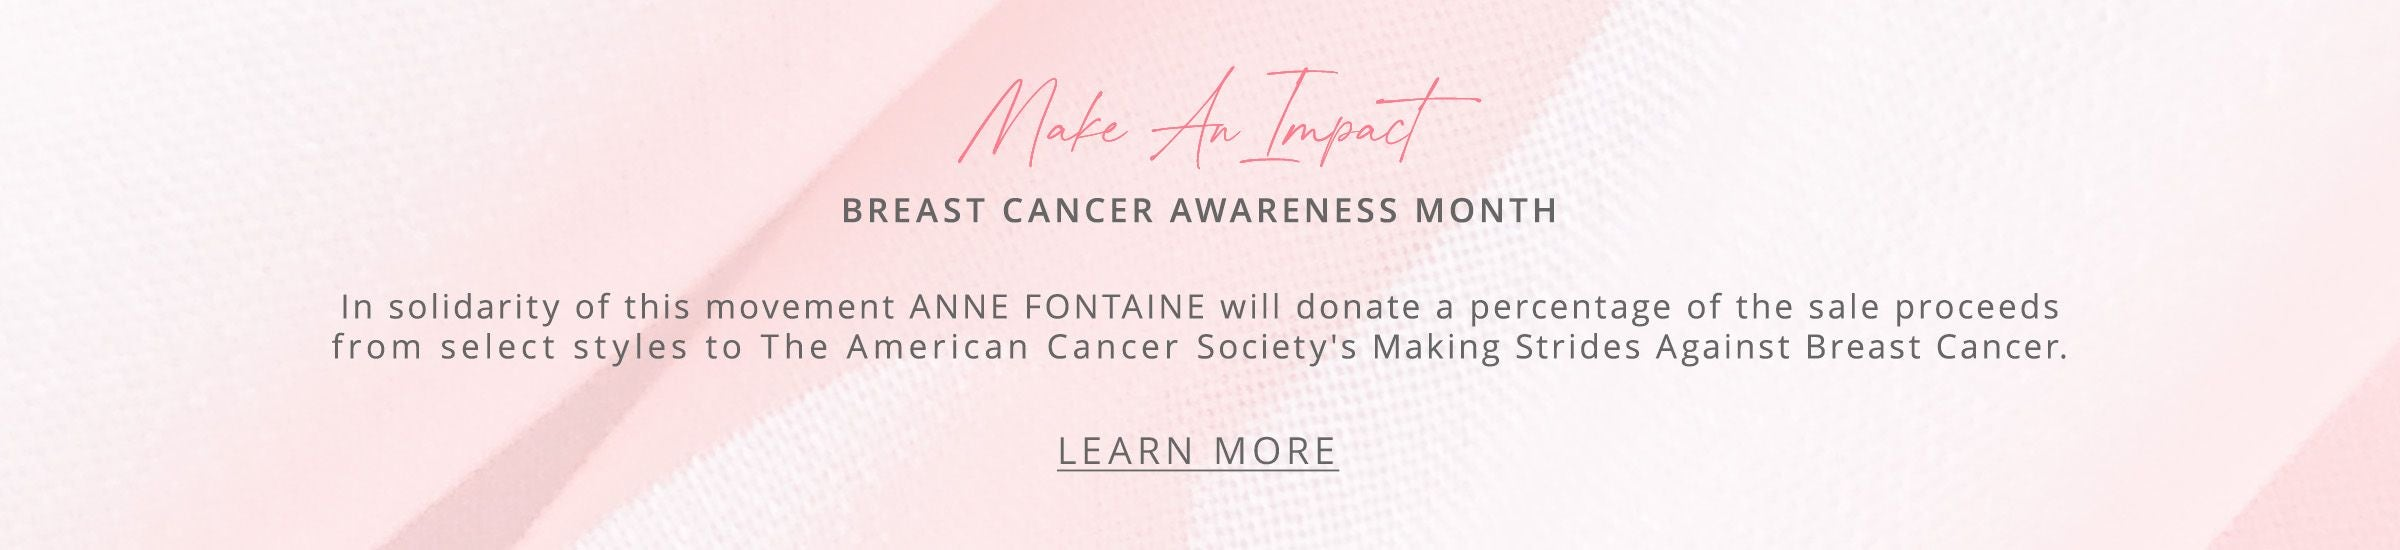 Make An Impact / Breast Cancer Awareness Charity Highlight